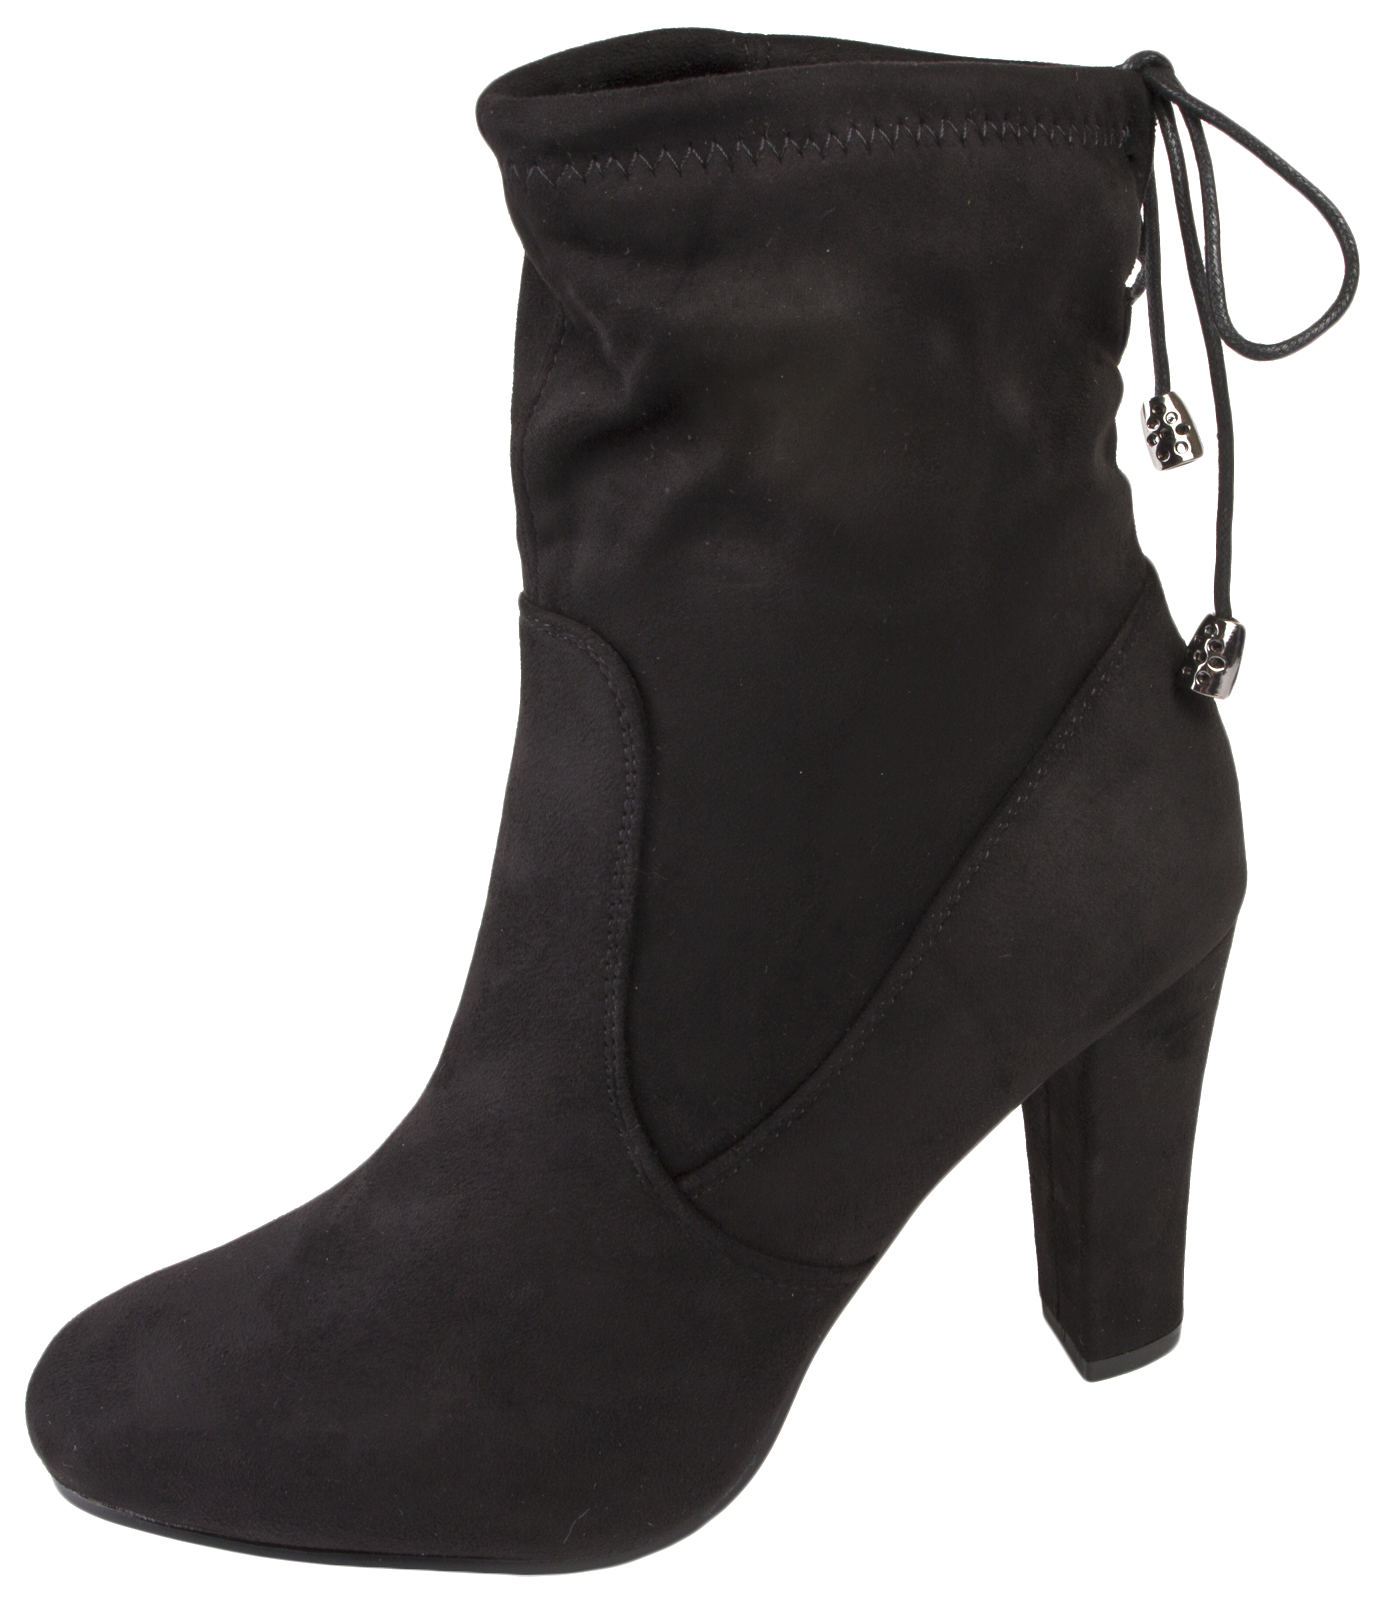 7c9f393a77 Womens High Heel Ankle Boots Adjustable Tie Top Faux Suede Leather ...